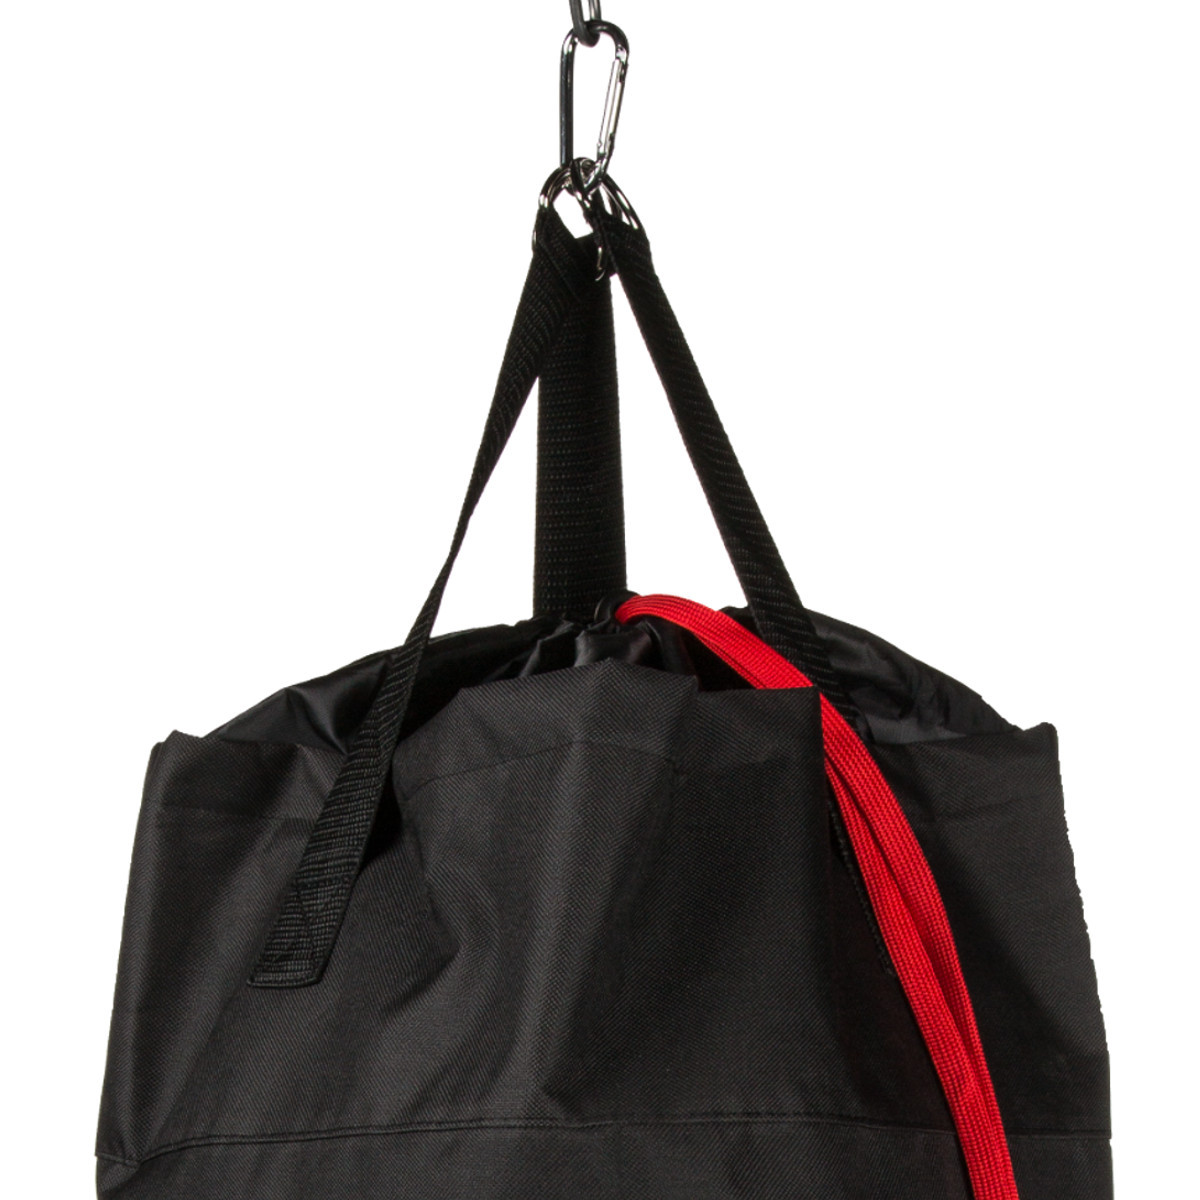 Laundry bag in punching bag style